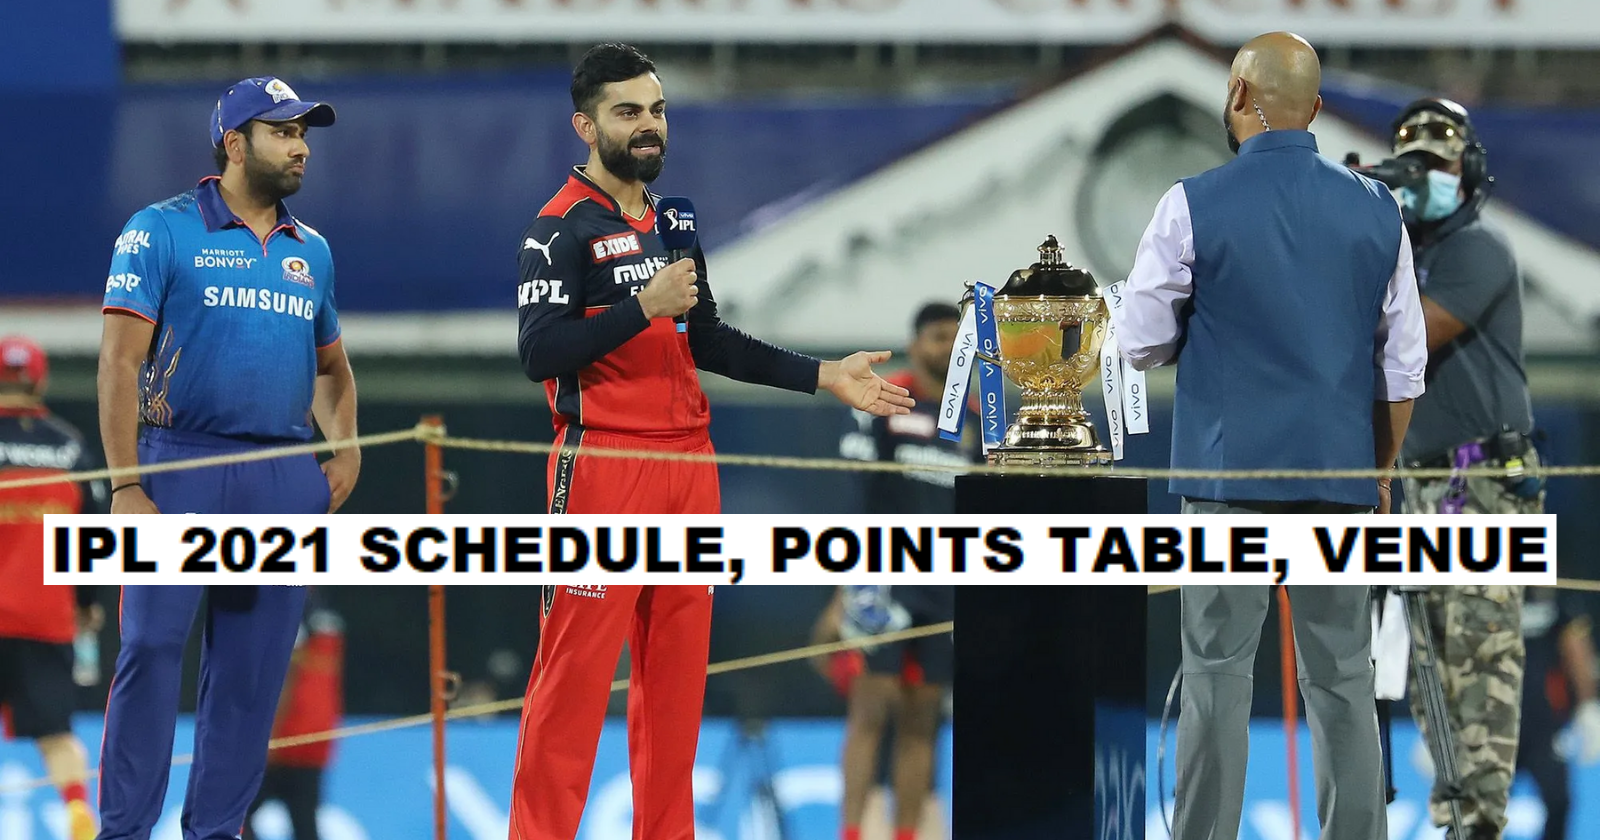 IPL 2021 Schedule, Points Table, Date, Match List, Orange Cap, Venue, Team List, And All You Need To Know